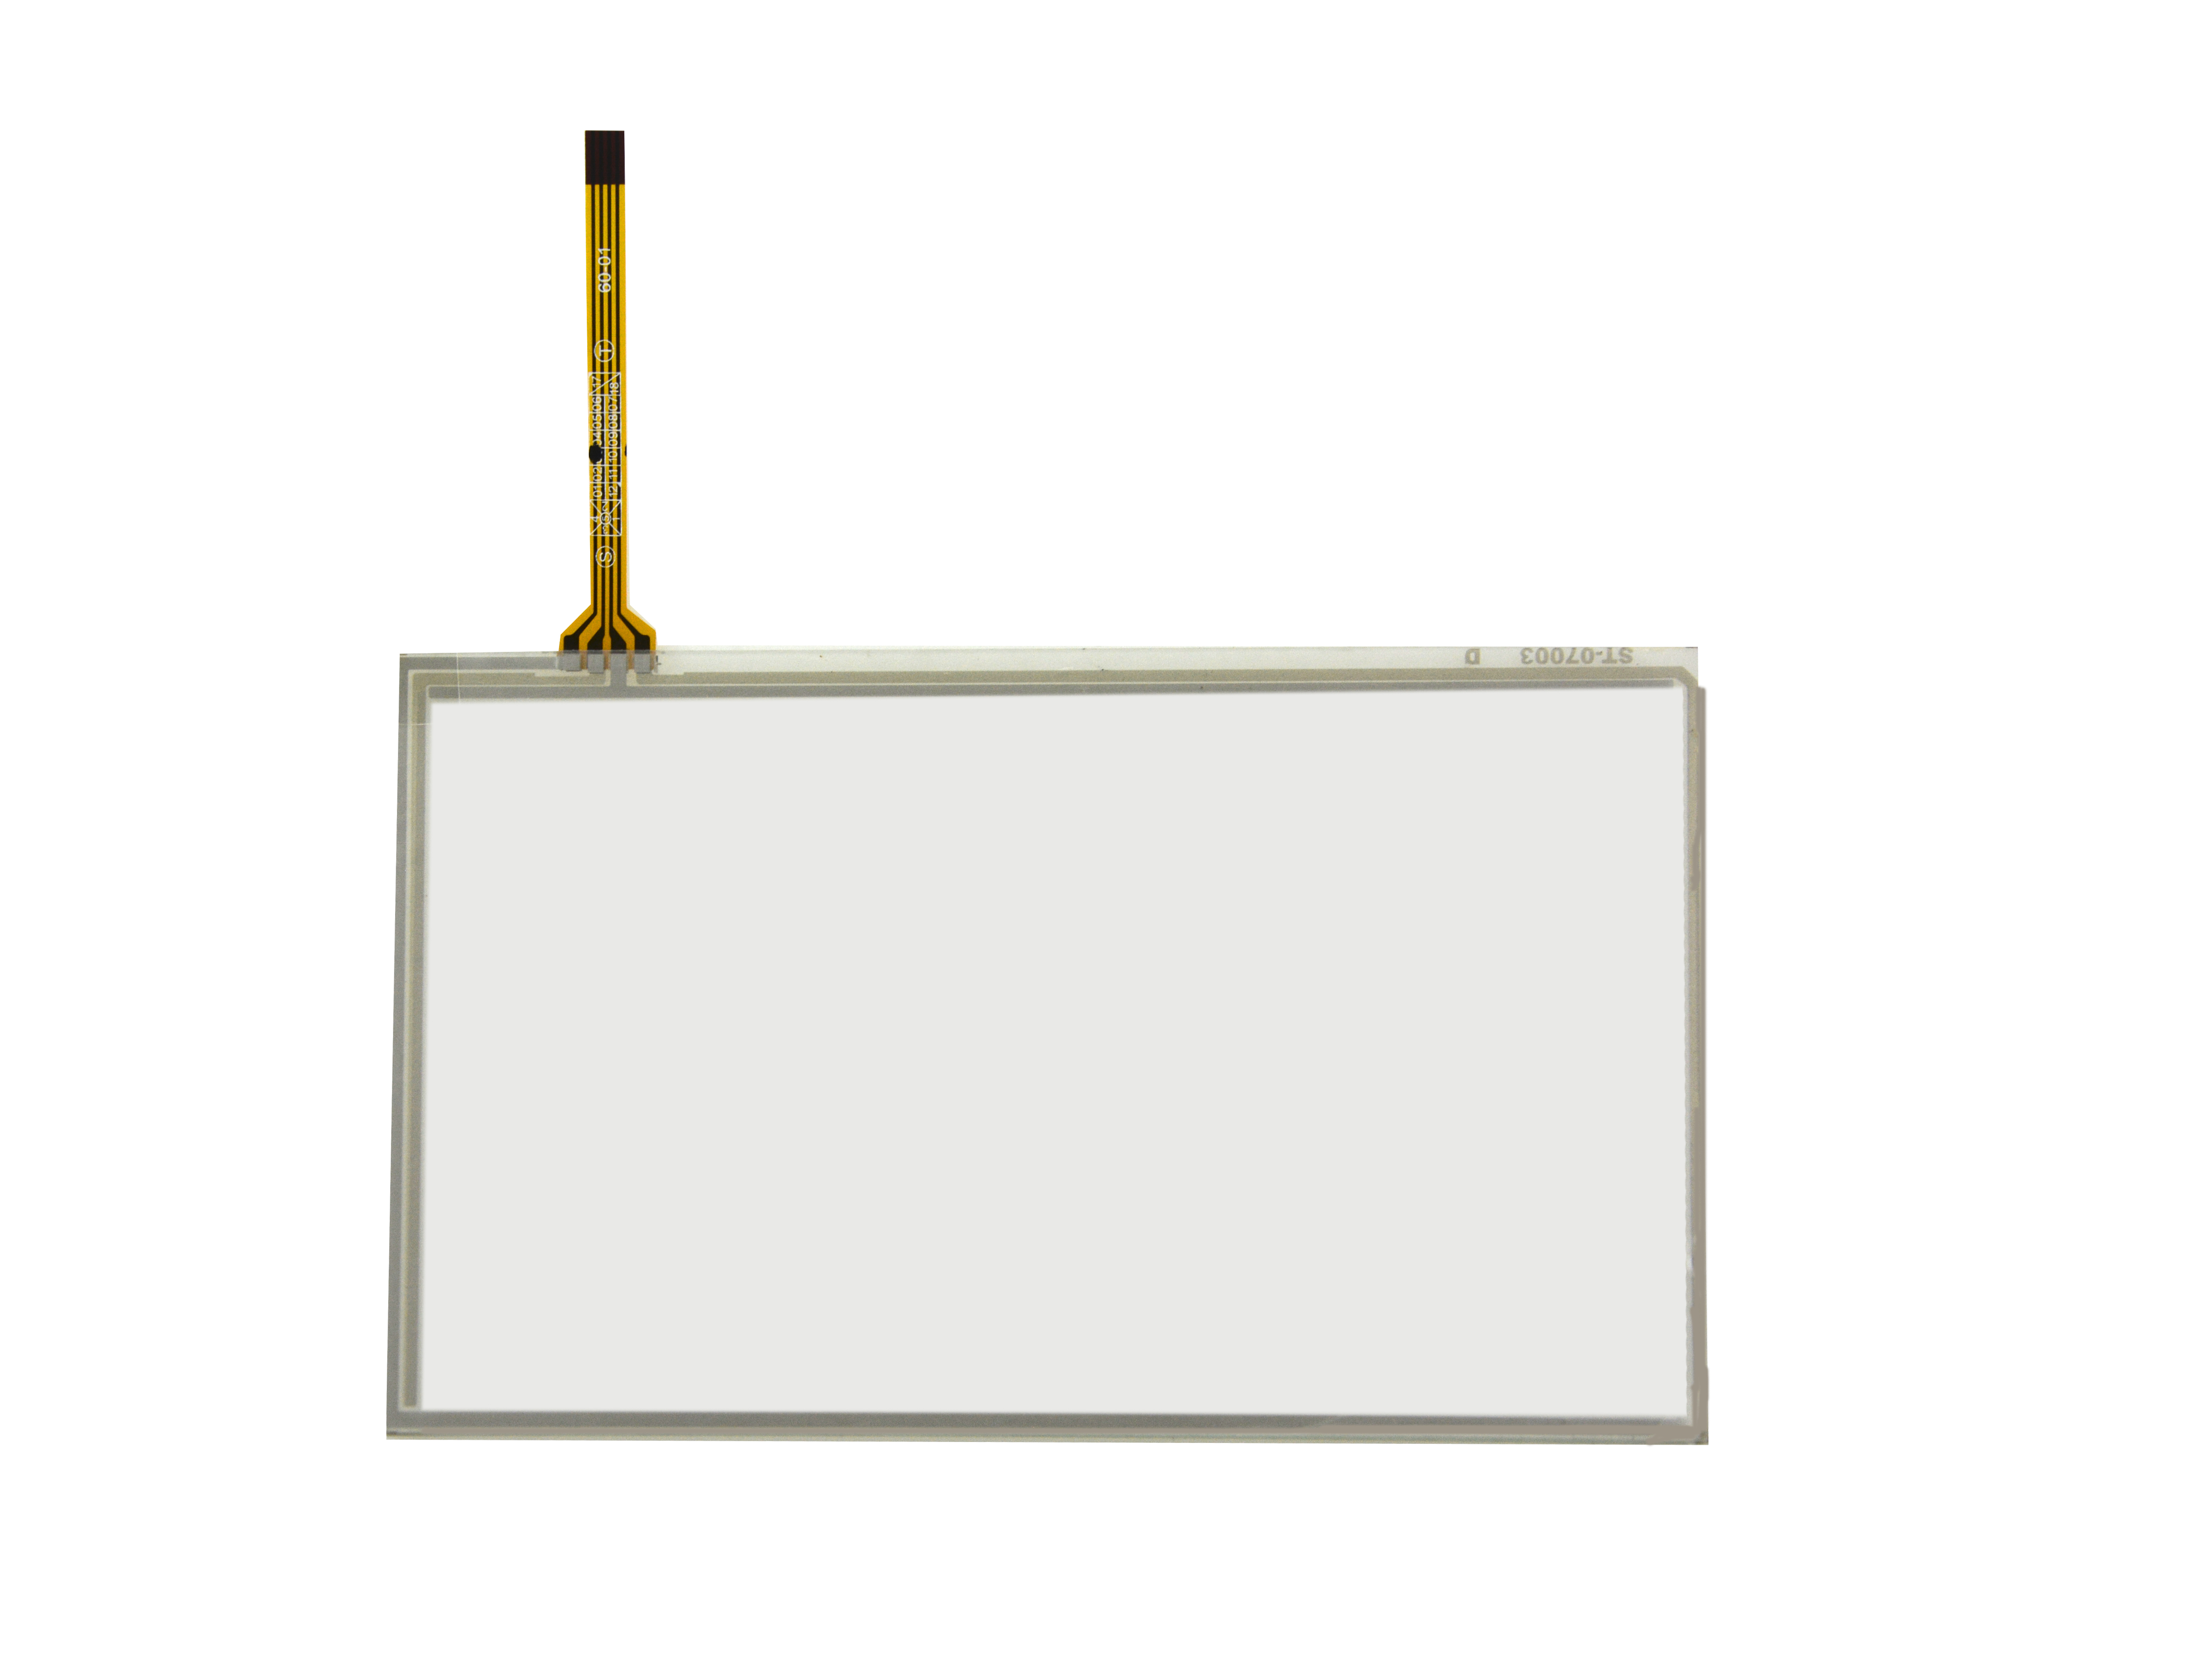 7inch 4 Wire Resistive Touch Panel 164.5 mm x 99.6mm With USB Controller Card